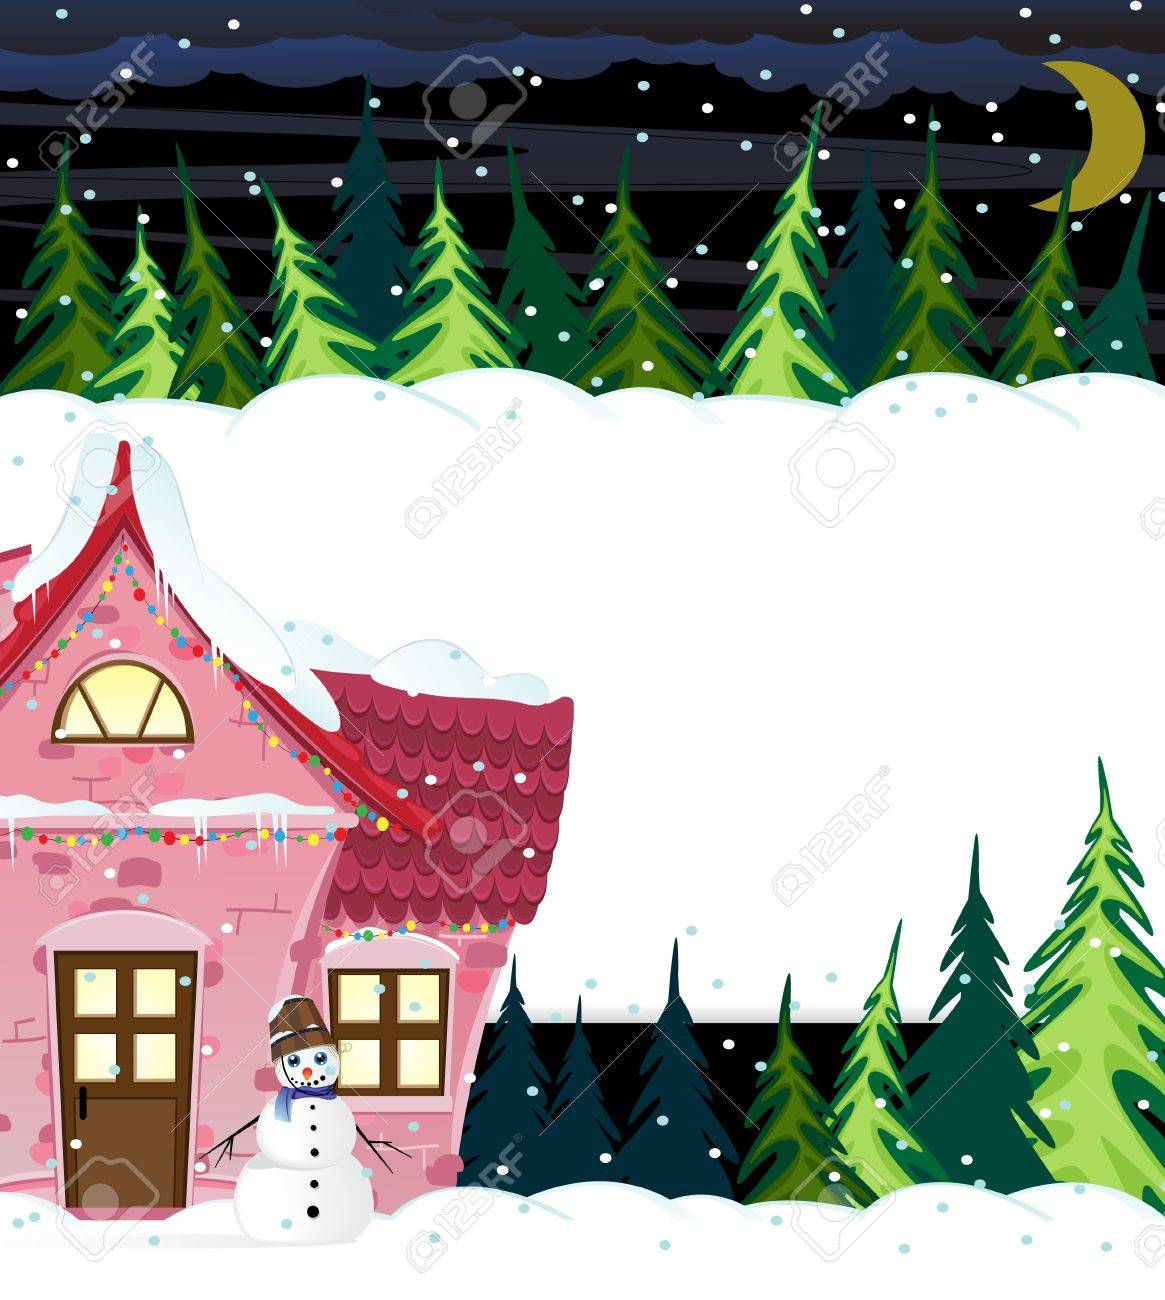 Small house with illuminated windows in night winter forest Stock Vector - 16480452